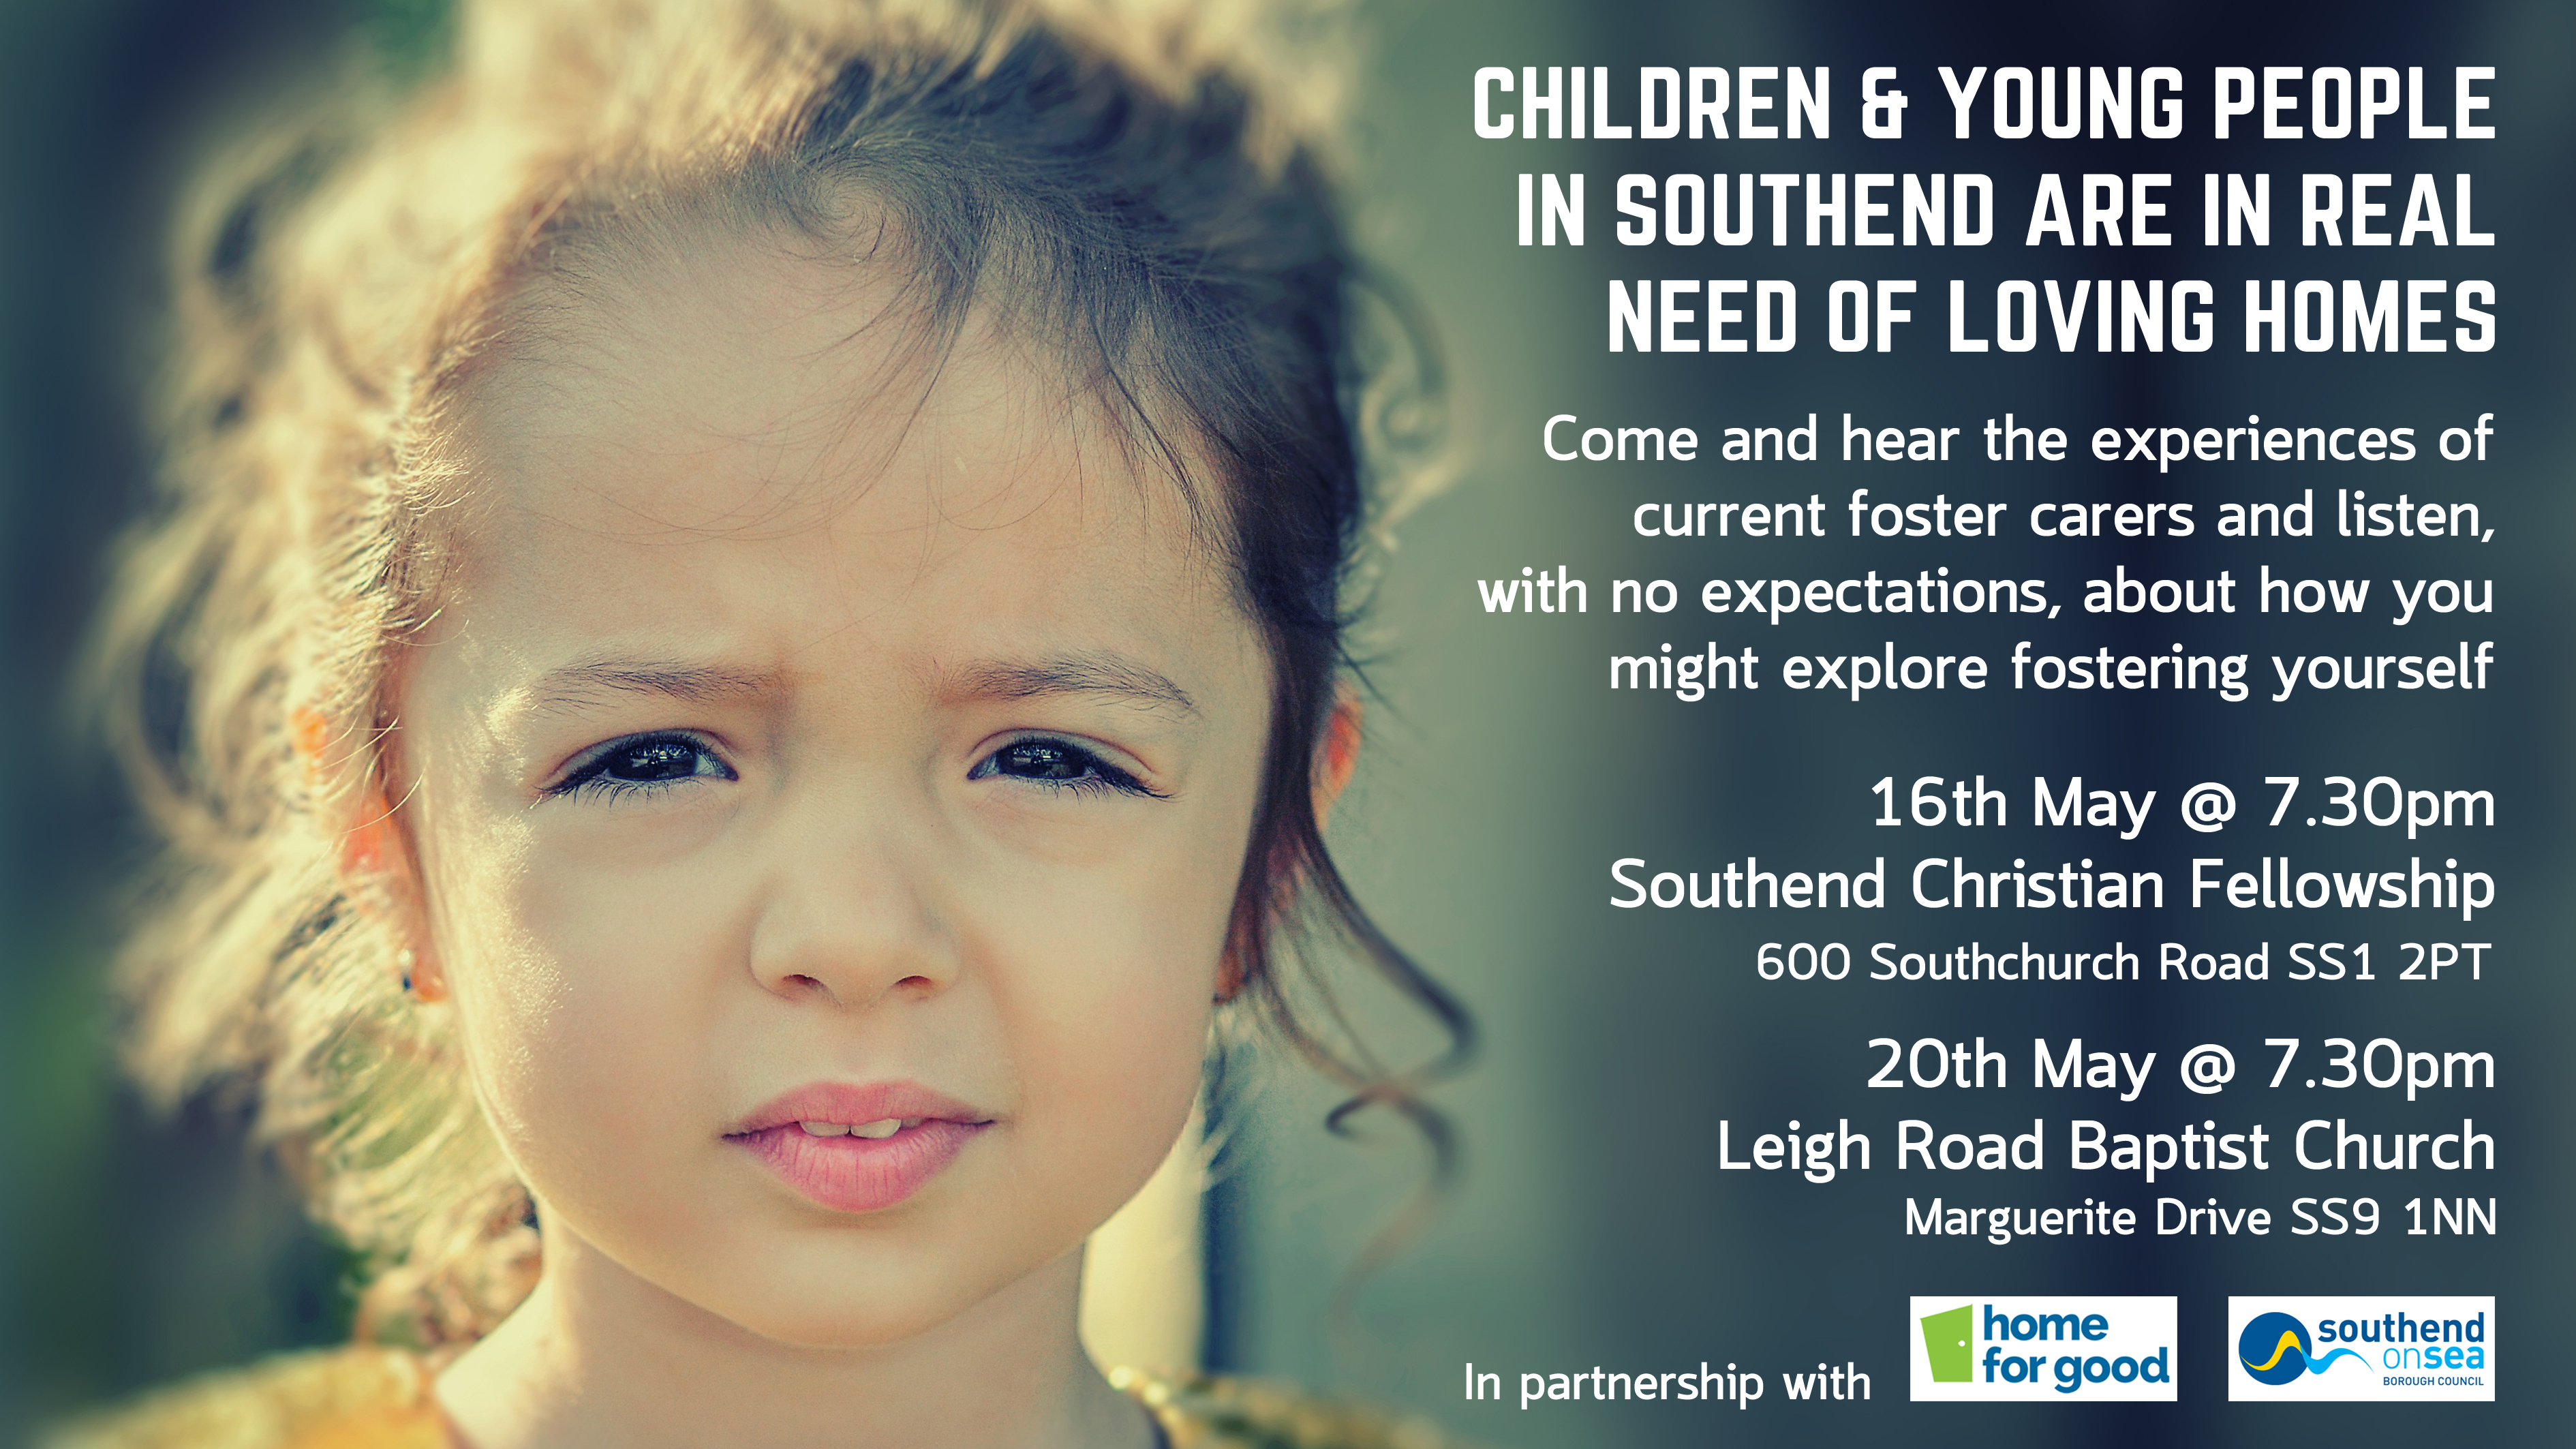 Children and young people in Southend-on-Sea are in real need of loving homes